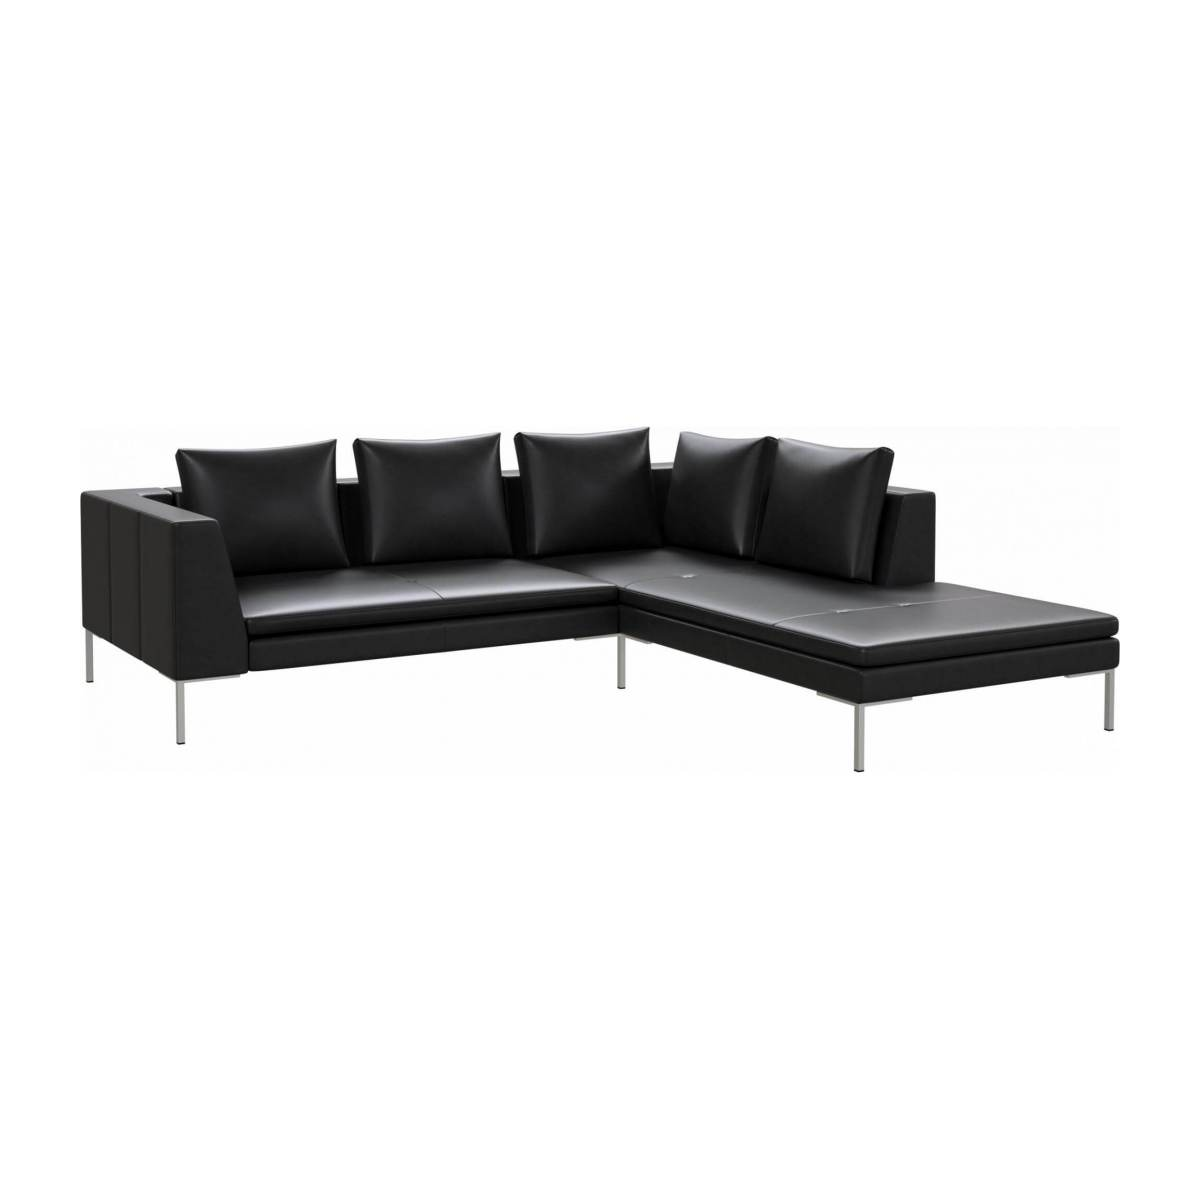 2 seater sofa with chaise longue on the right in Savoy semi-aniline leather, platin black  n°2